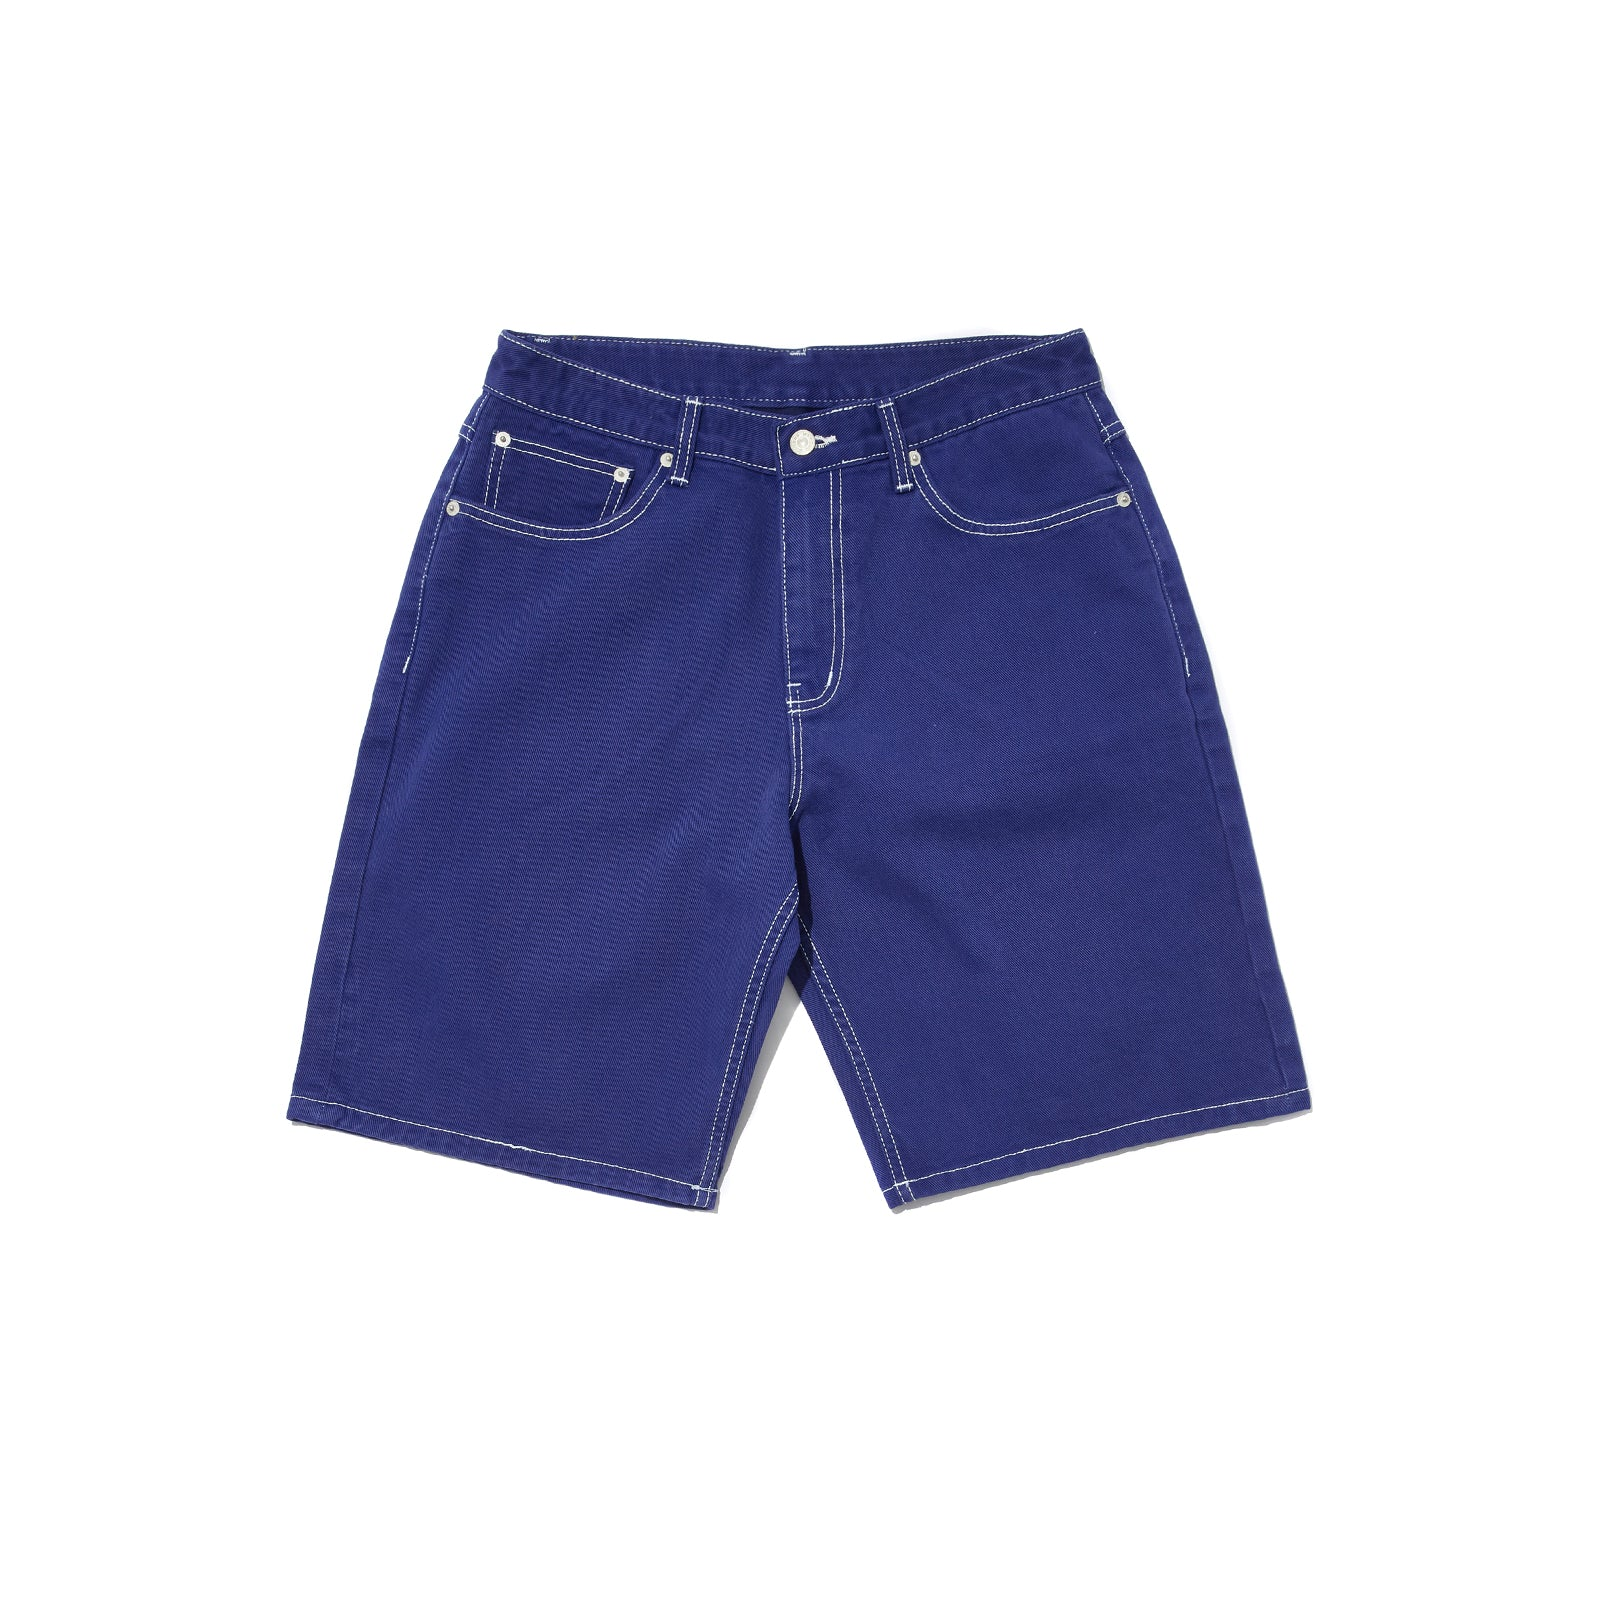 BASIC 5-POCKET SHORTS (BLUE)